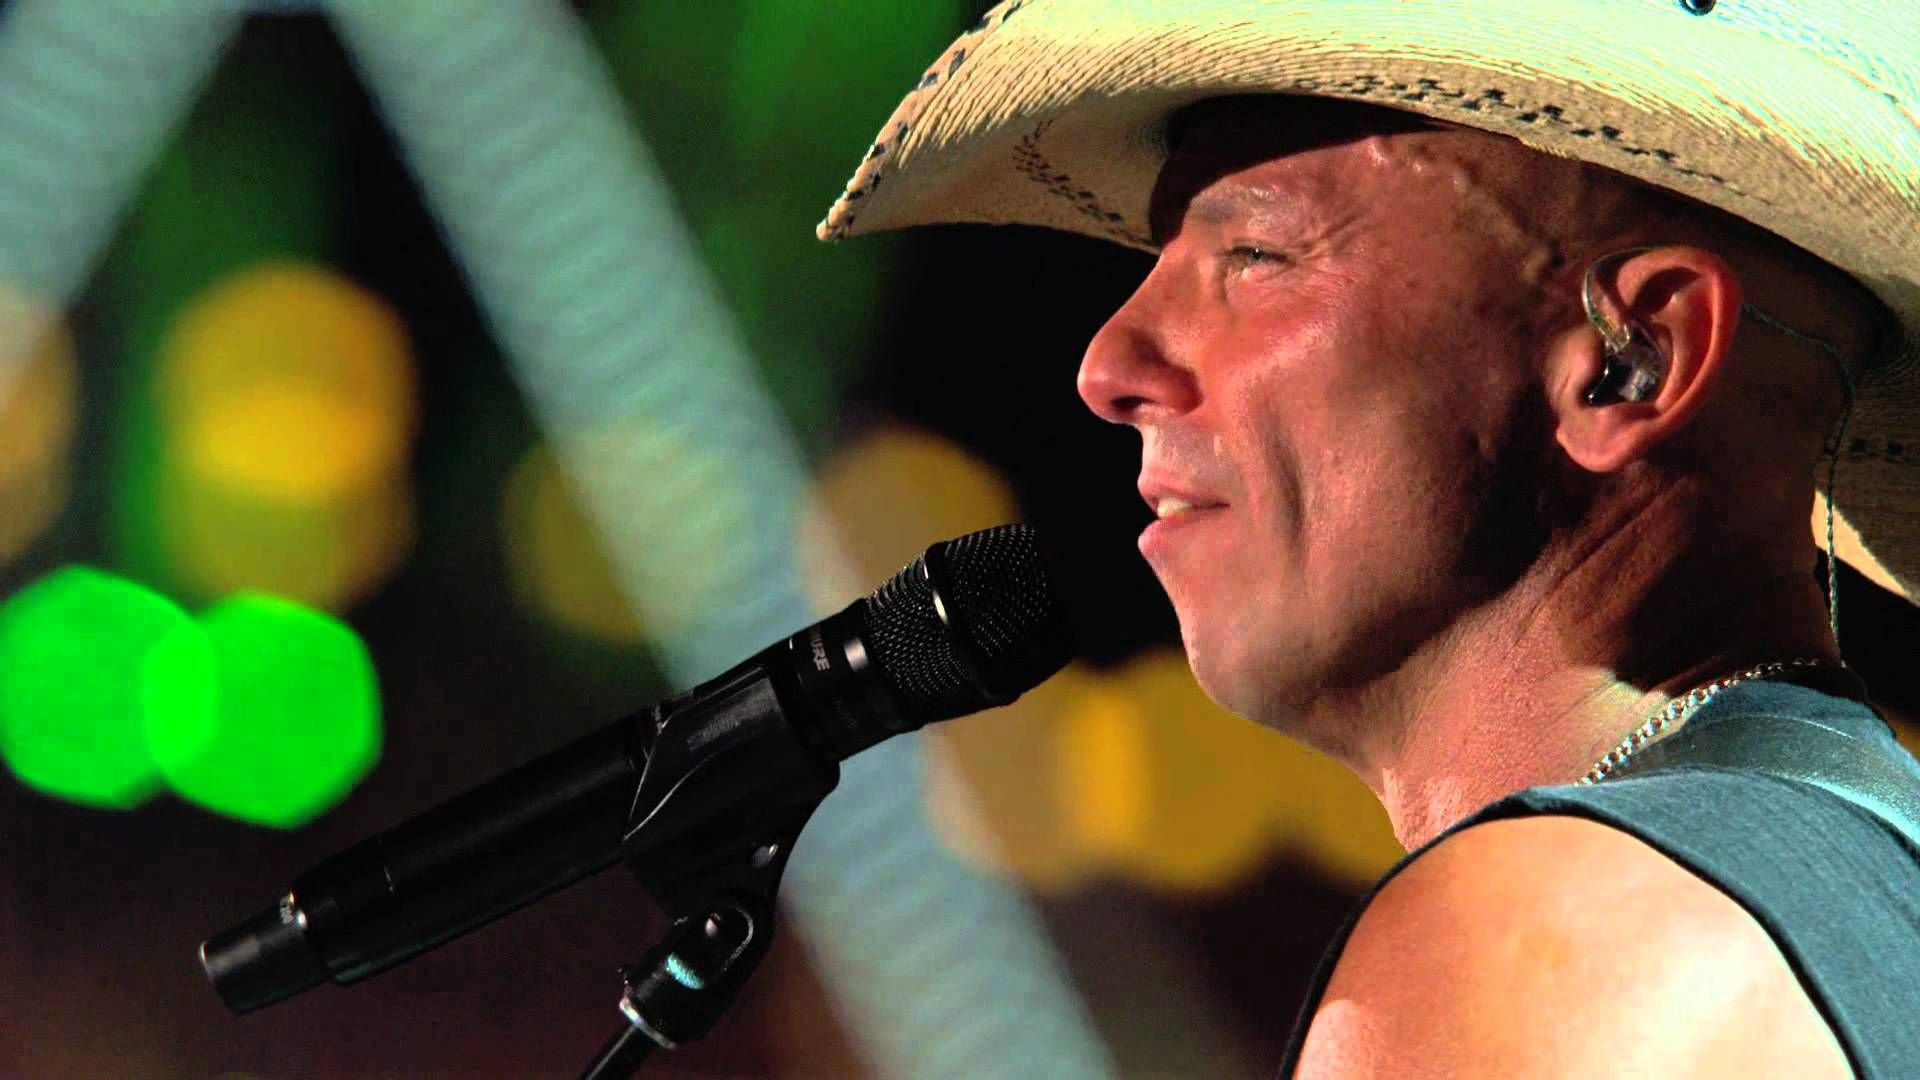 He is certainly singing from my HAPPY PLACE...Kenny